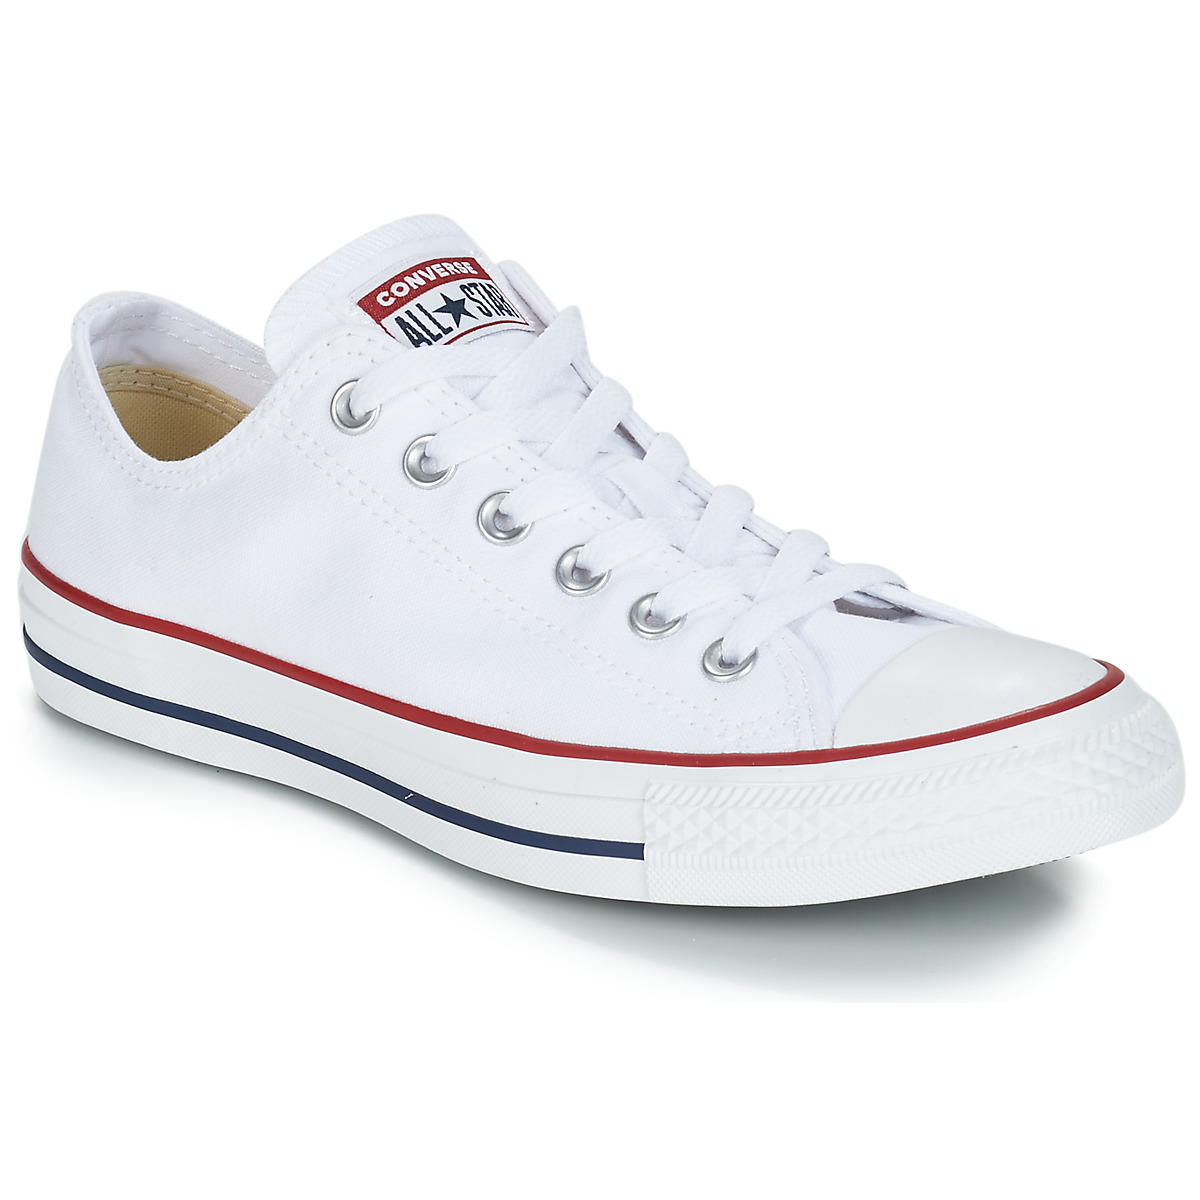 c0d0827ade2f Chaussures Baskets basses Converse CHUCK TAYLOR ALL STAR CORE OX Blanc  Optical